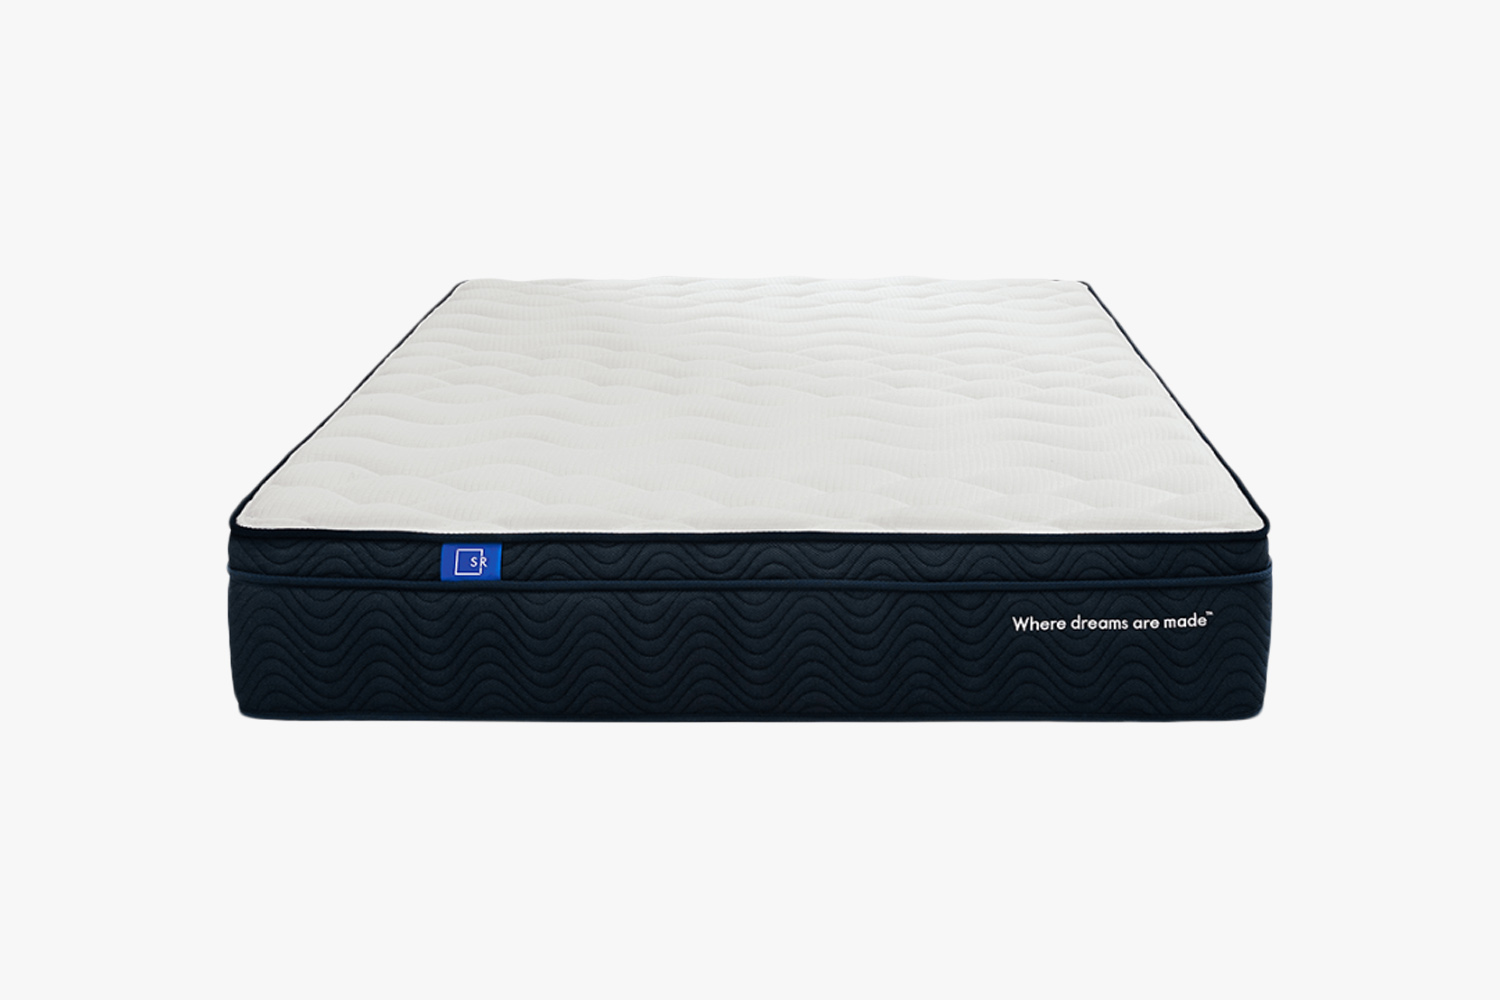 Sleep Republic hybrid mattress